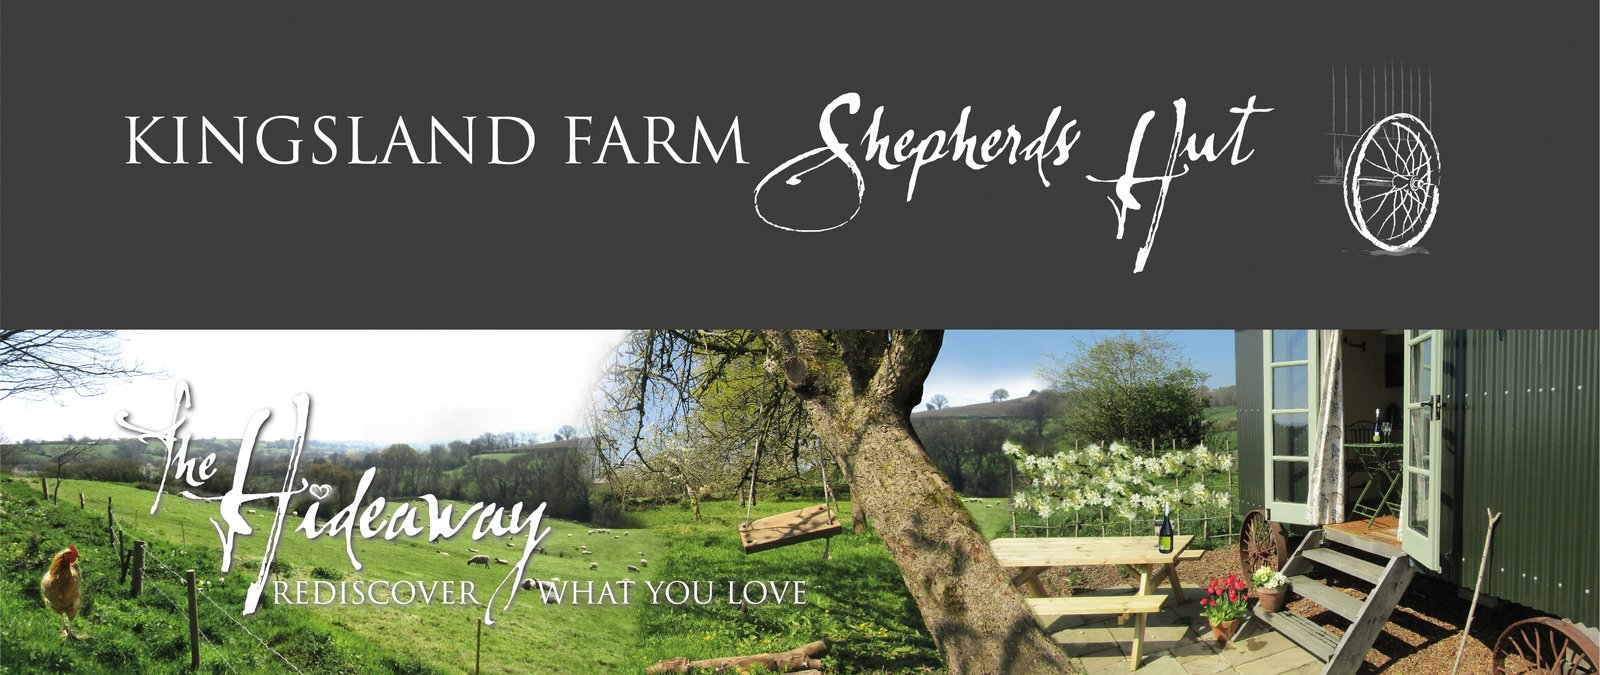 Branding for Kingsland Farm